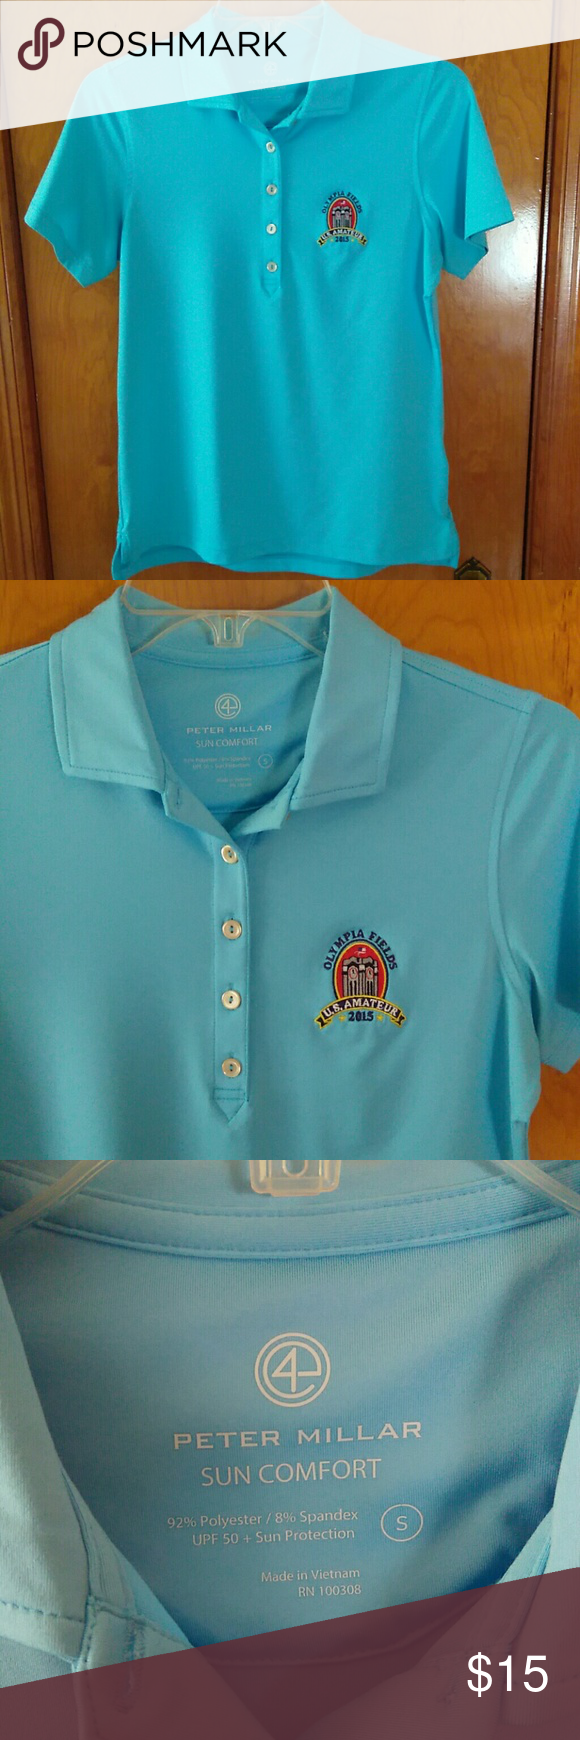 Peter Millar Solid Blue Golf Polo Size Small Item is solid